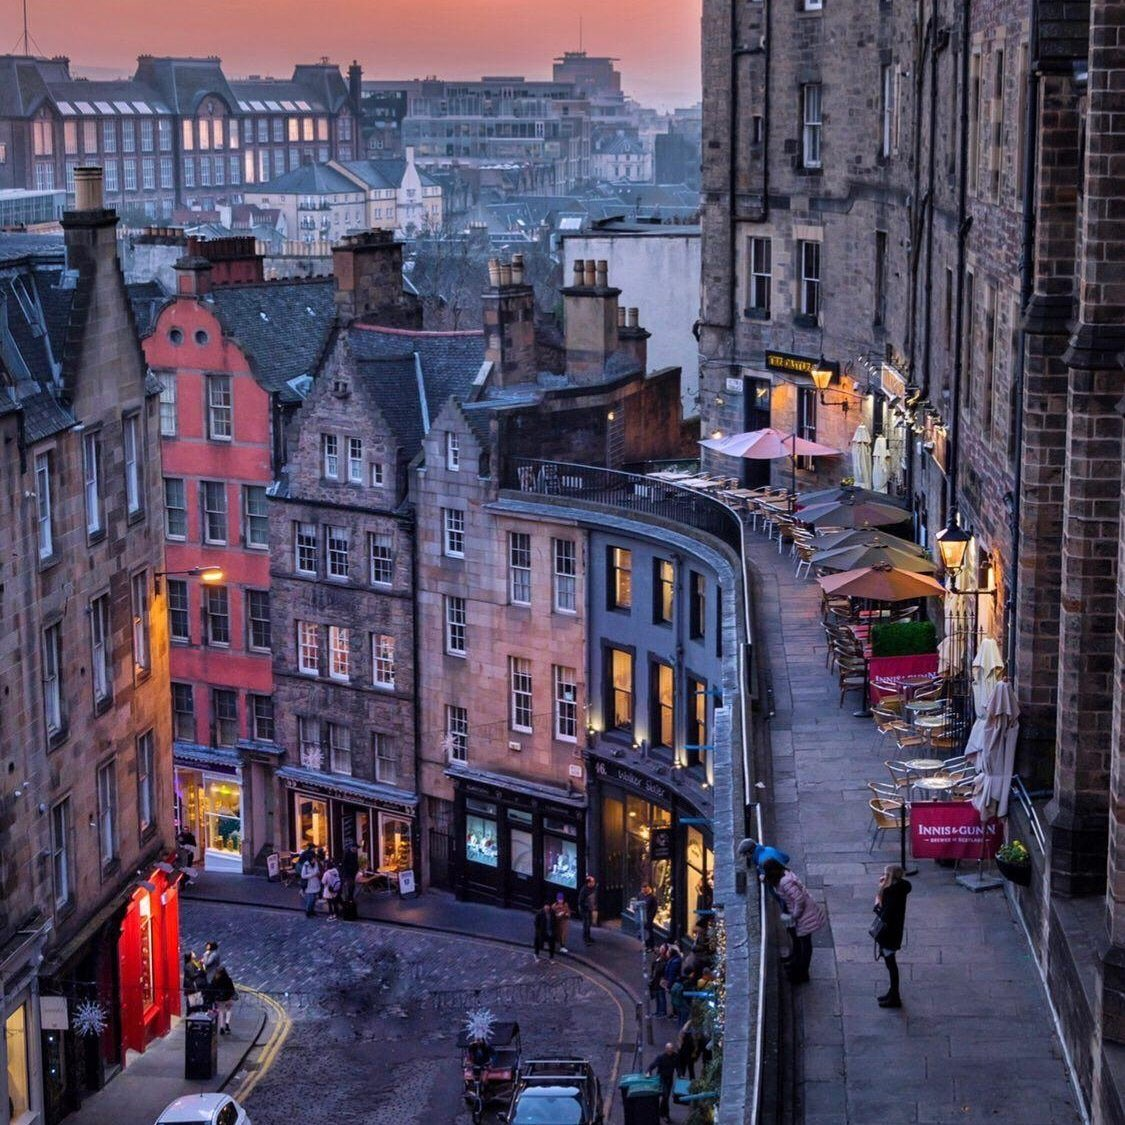 Edinburgh /6.  A must-see ... Victoria Street from the Royal Mile to Grassmarket. Quaint shops, relaxed atmosphere, everyone talks to everyone... great pubs ☺️ https://t.co/p3PFsW2eQW